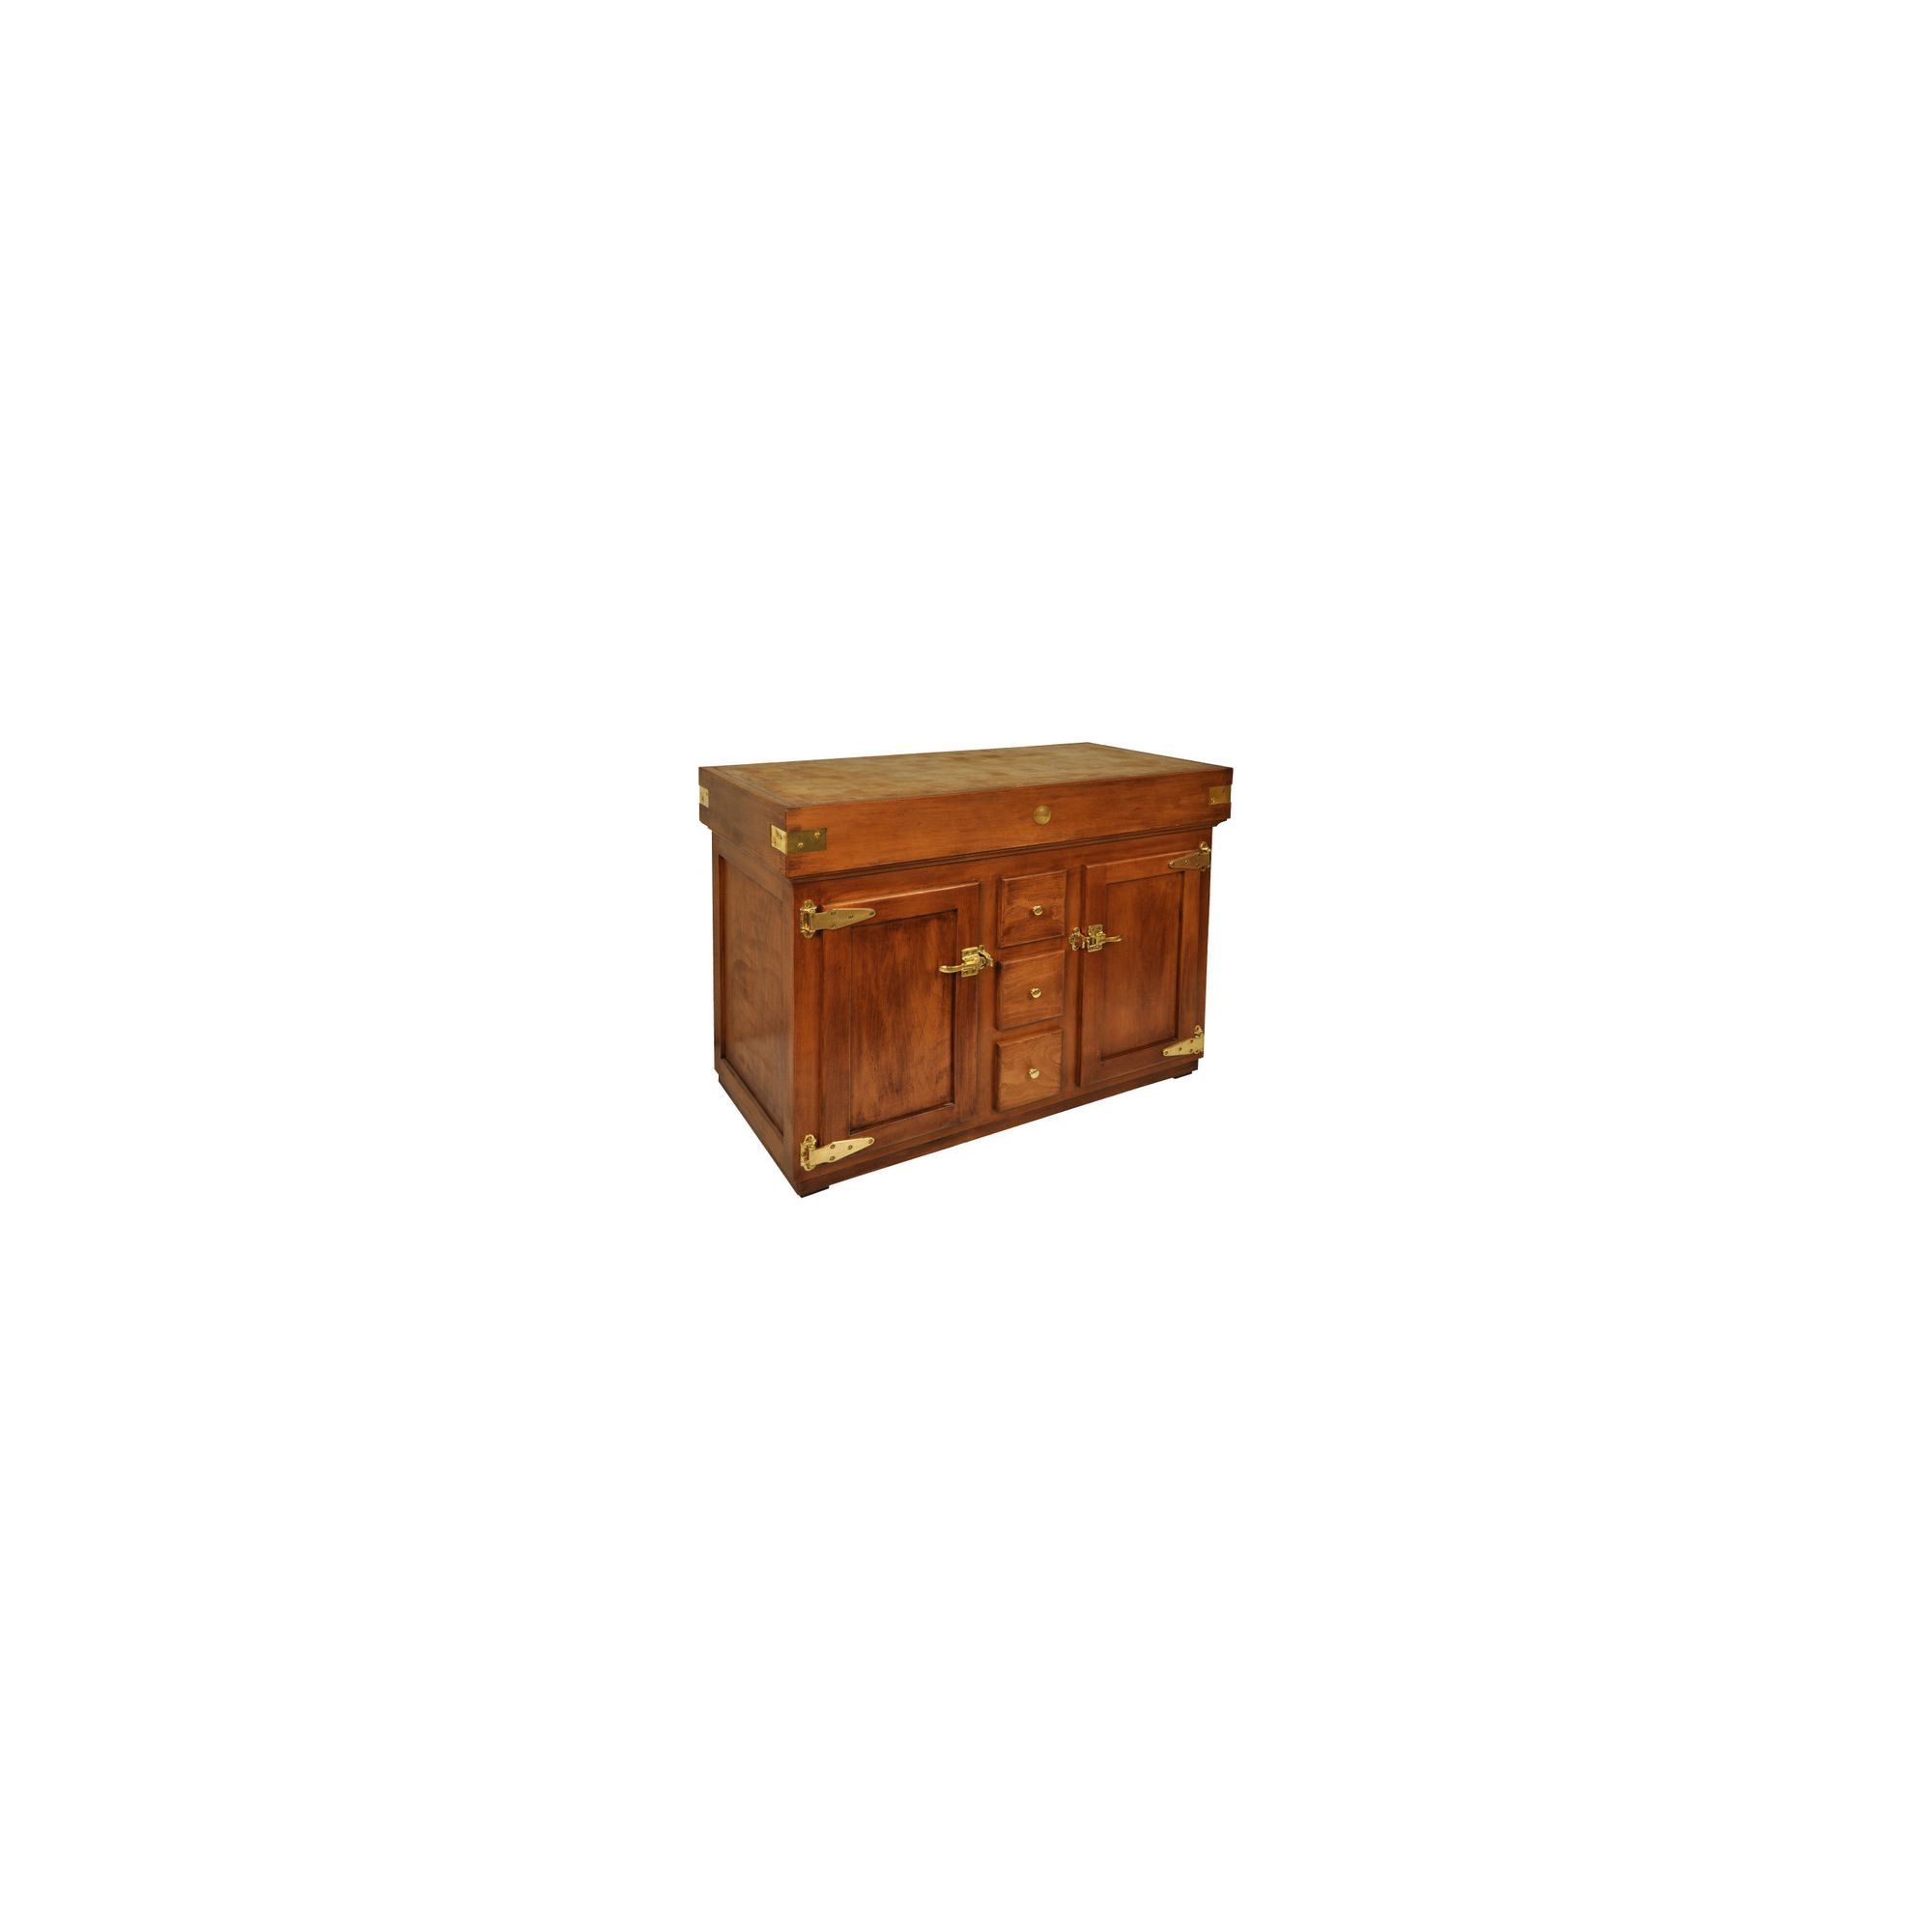 Chabret Antique ''Icebox'' Wooden Block - 90cm X 100cm X 60cm at Tesco Direct